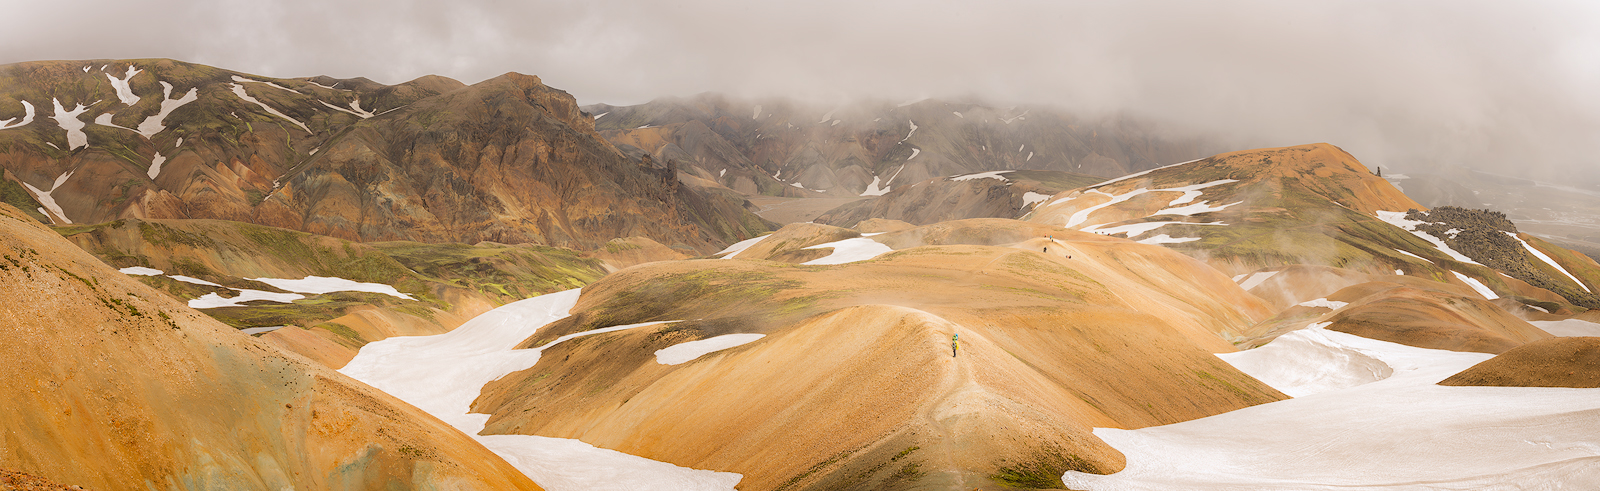 Iceland, Laugavegur, Laugavegur Trail, Highlands, Hills, Valleys, Snow, Fog,  Panoramic, Bernard Chen, photo